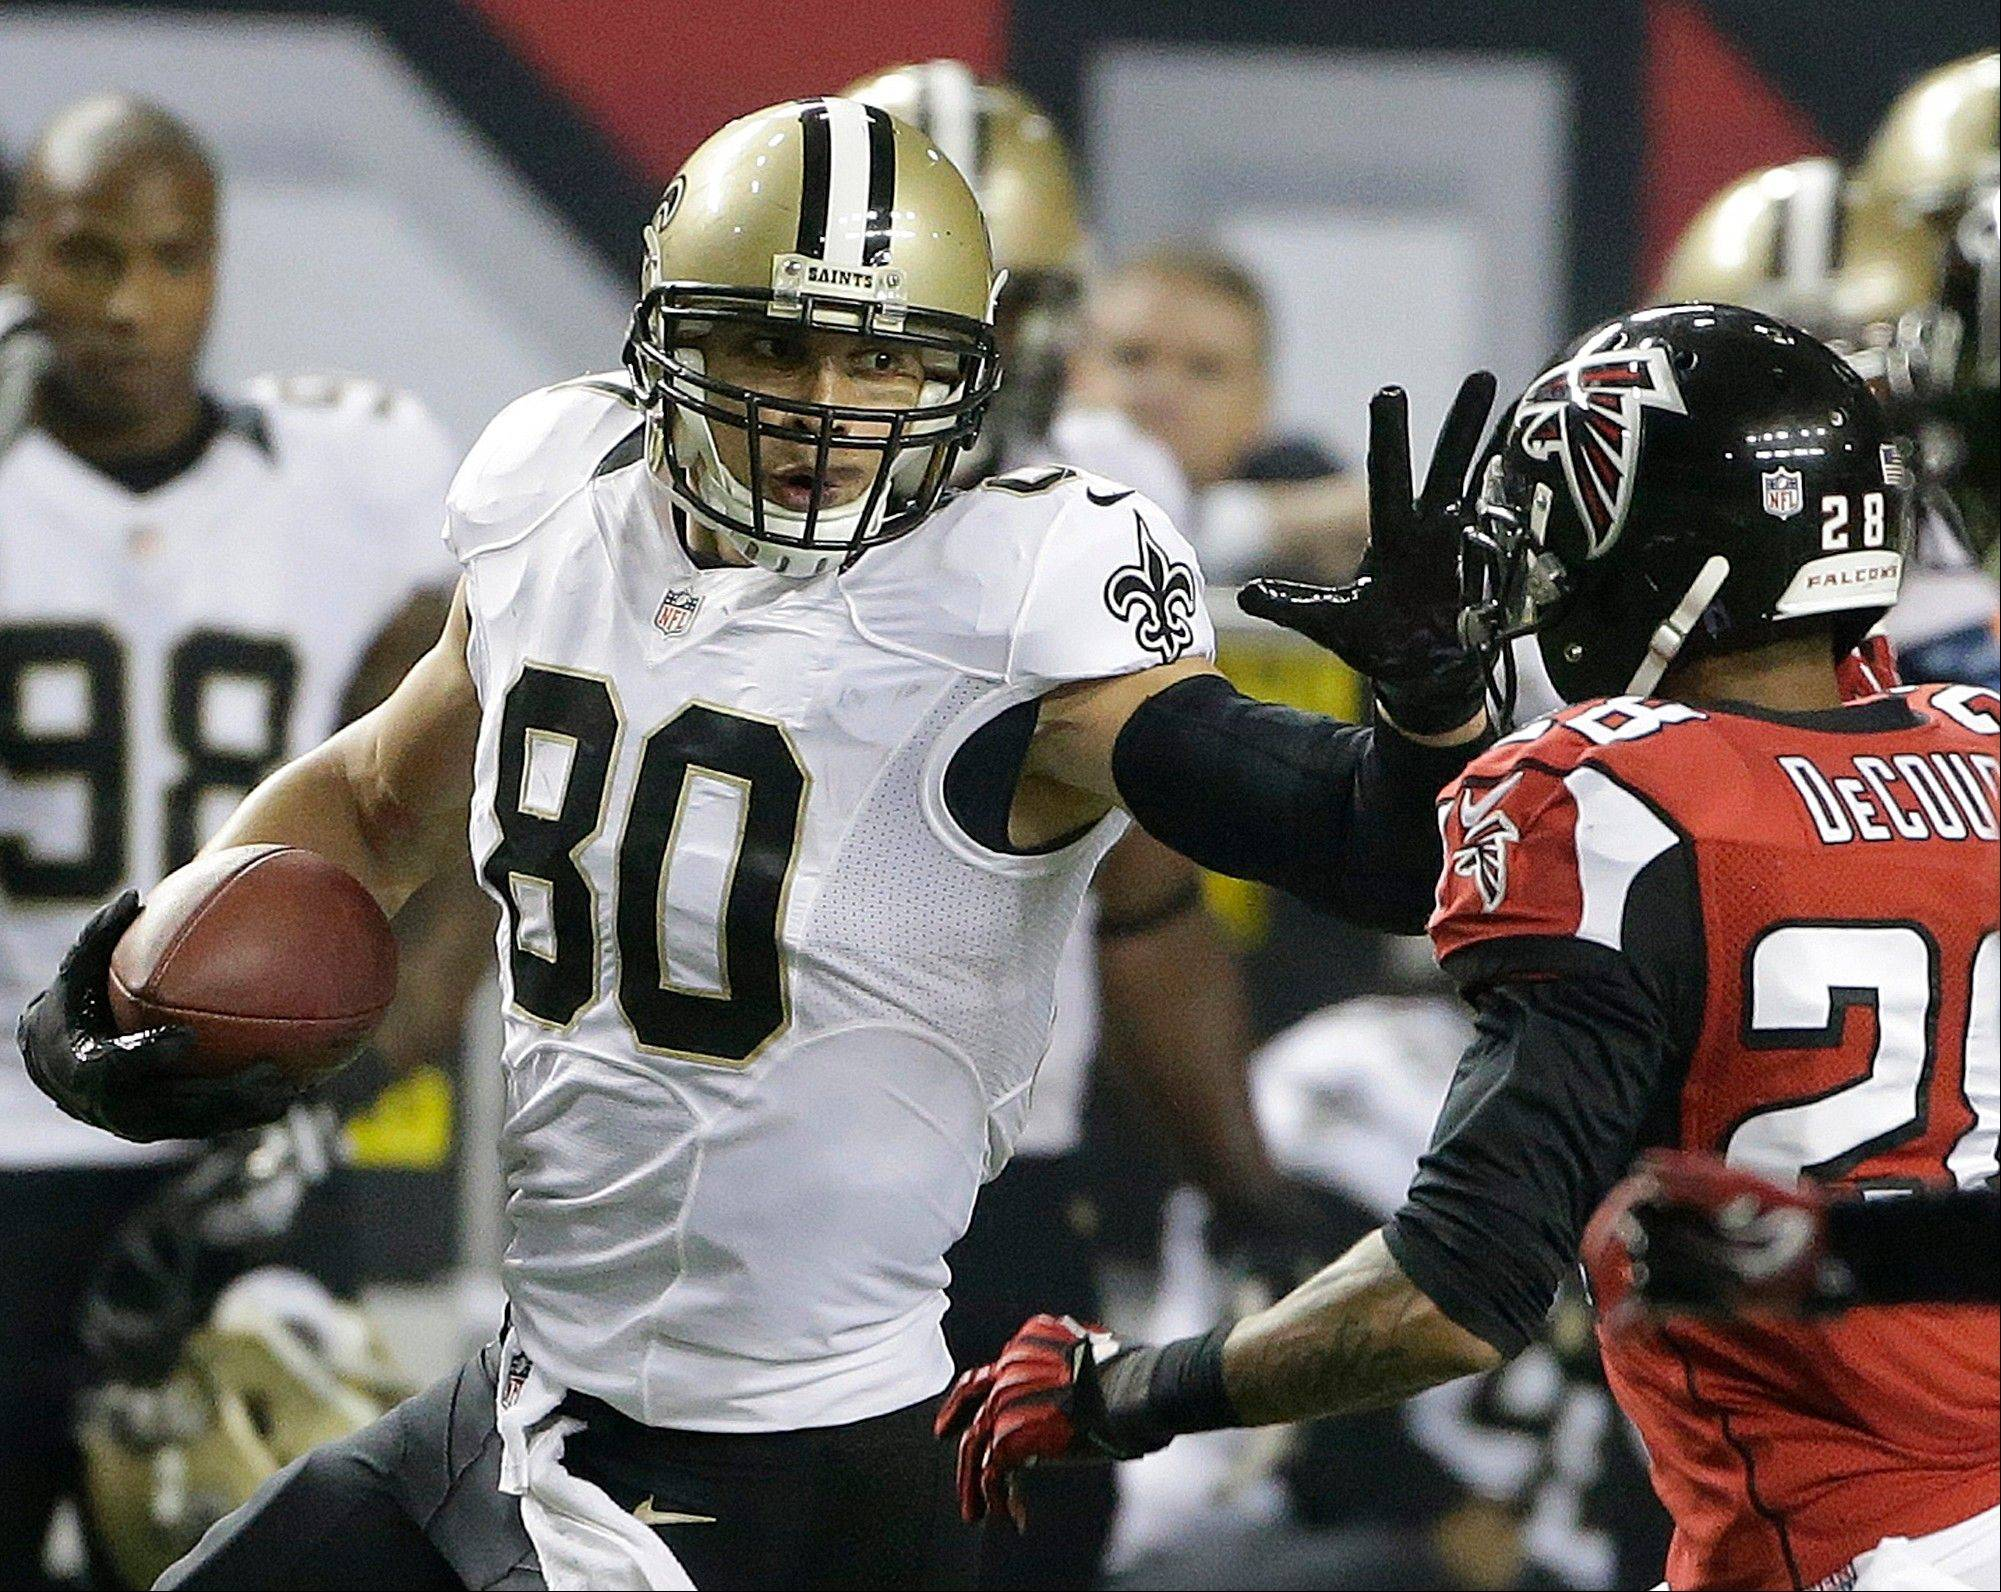 New Orleans Saints tight end Jimmy Graham (80) prepares to stop Atlanta Falcons free safety Thomas DeCoud (28) during the second half of an NFL football game, Thursday, Nov. 21, 2013, in Atlanta.